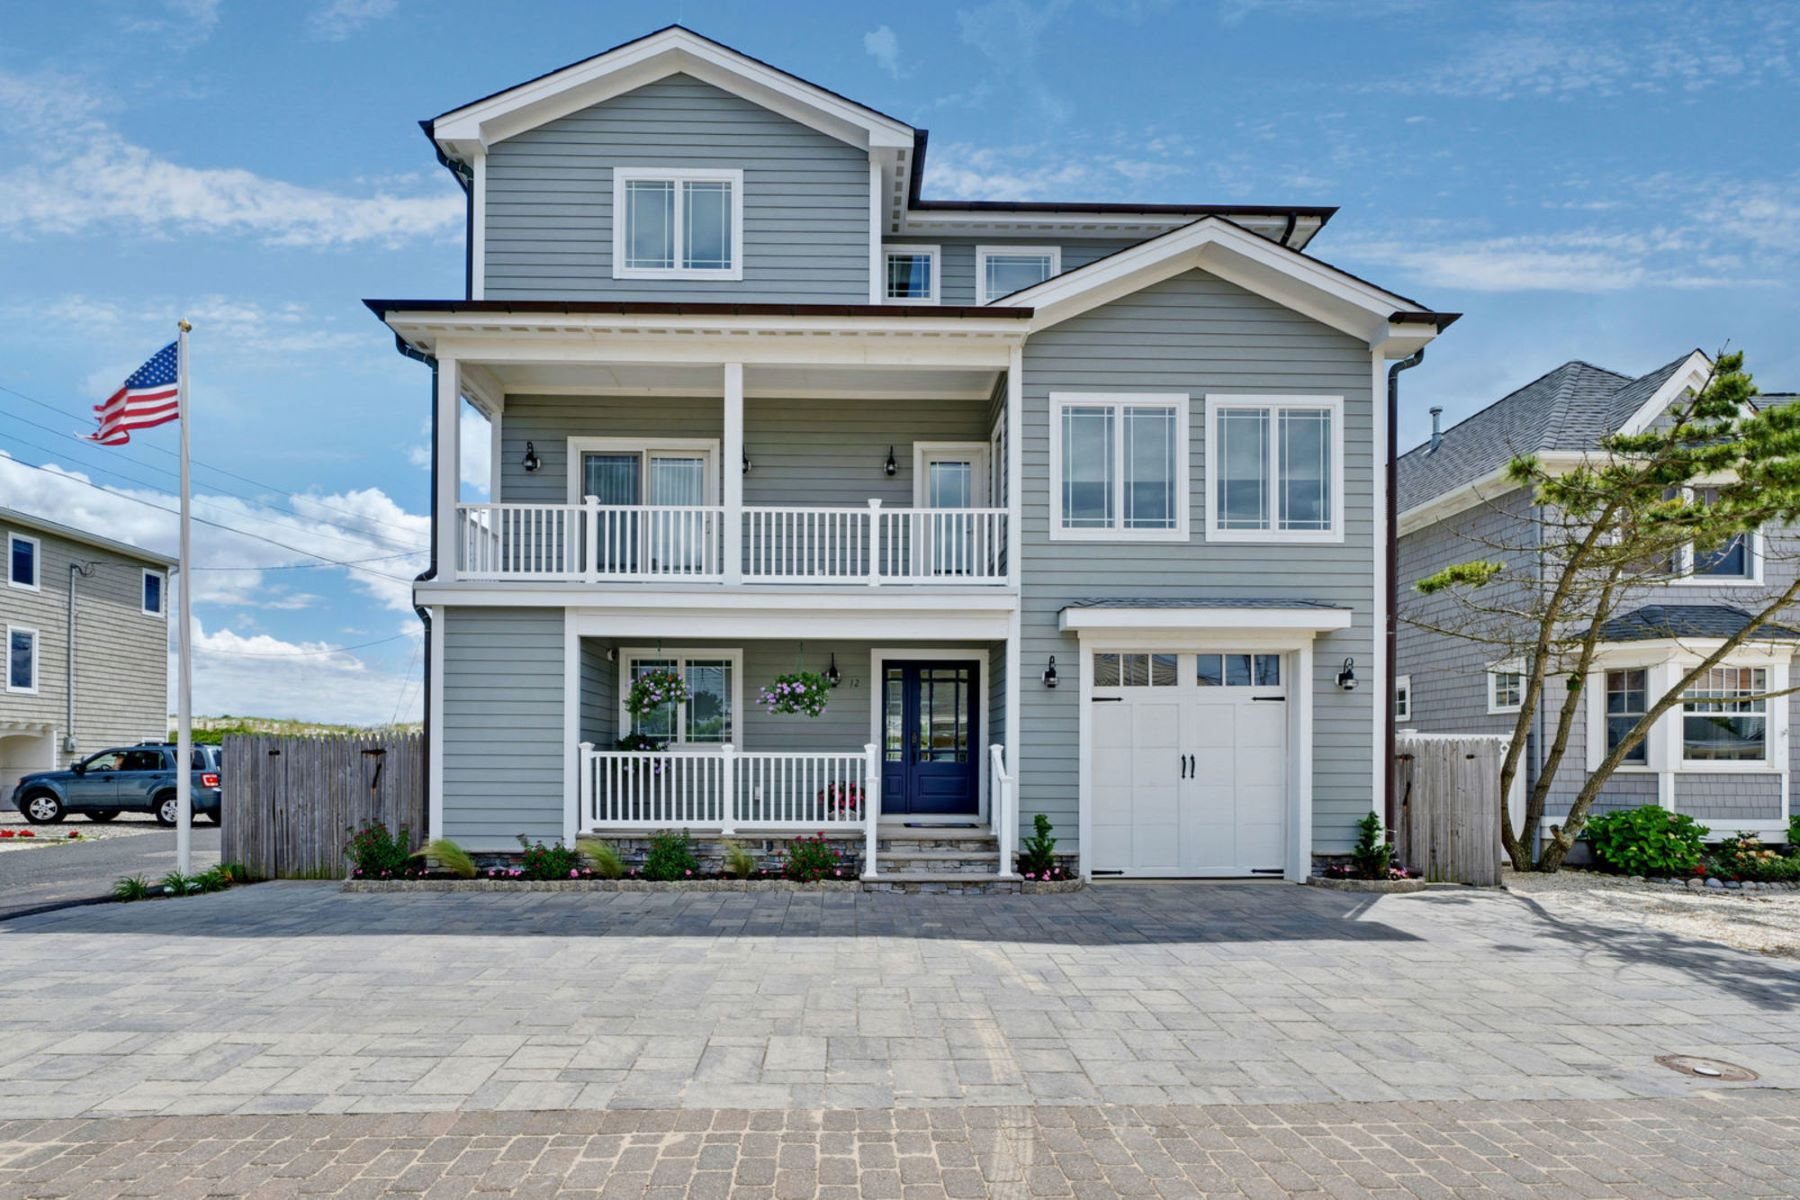 Single Family Homes for Sale at Beautiful Custom Built Home With Ocean Views 12 Bel Air Road, Mantoloking, New Jersey 08738 United States